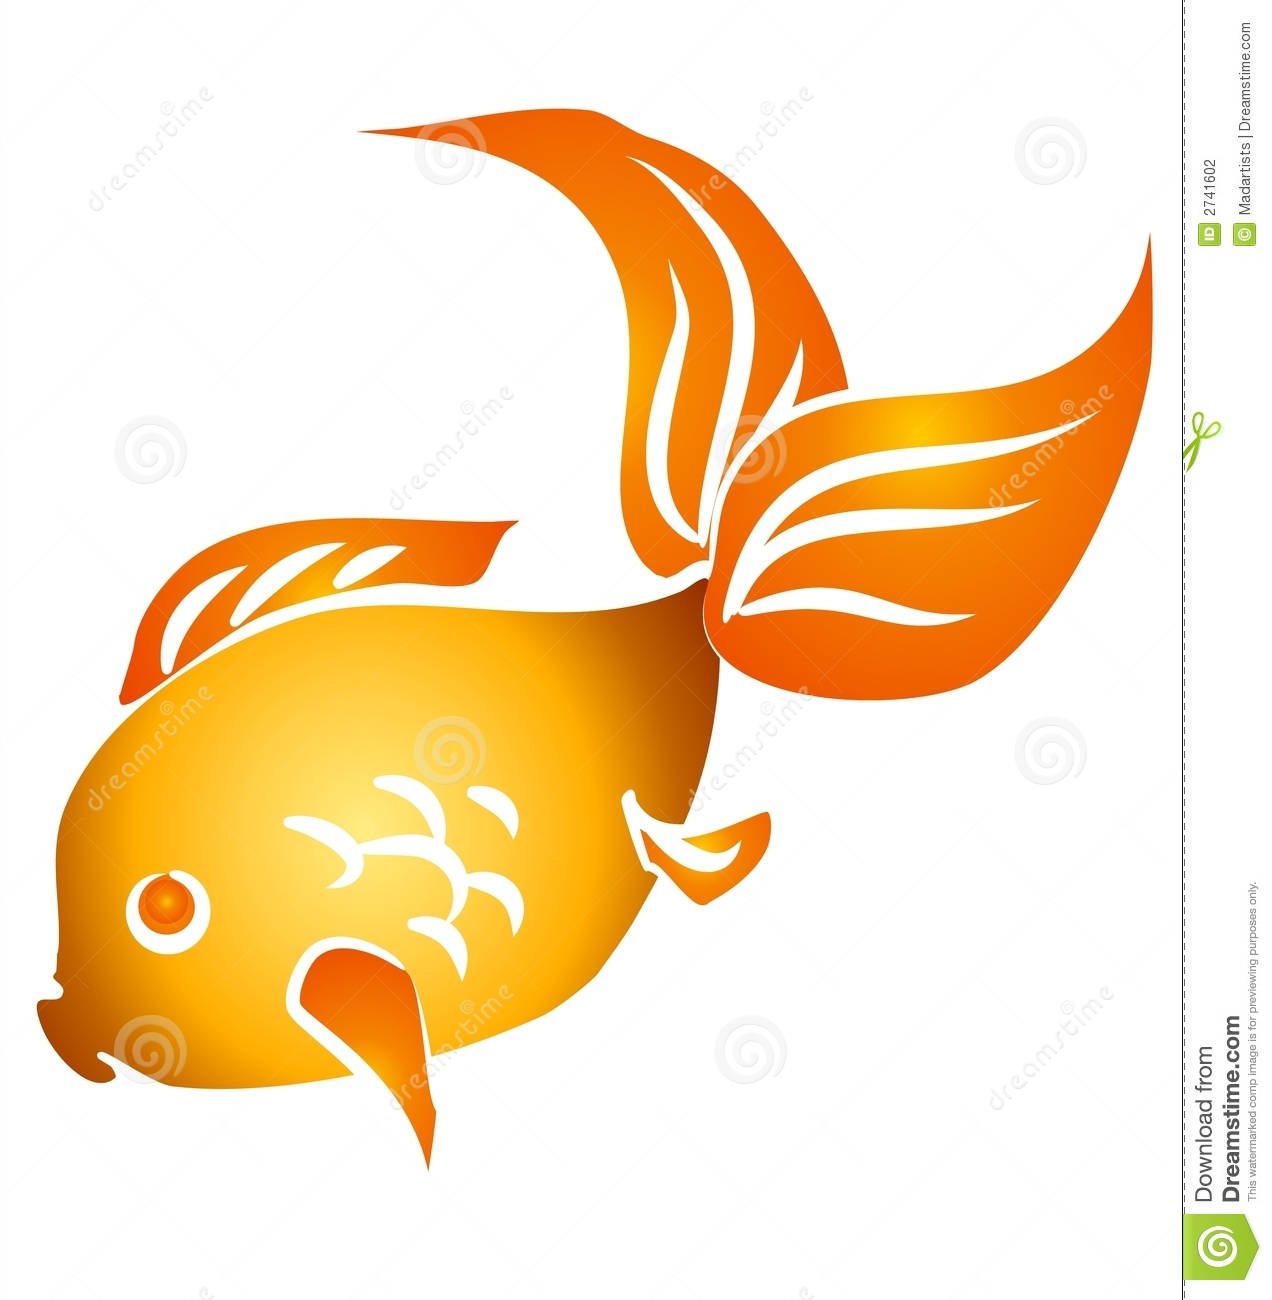 isolated goldfish clip art stock illustration illustration of rh dreamstime com